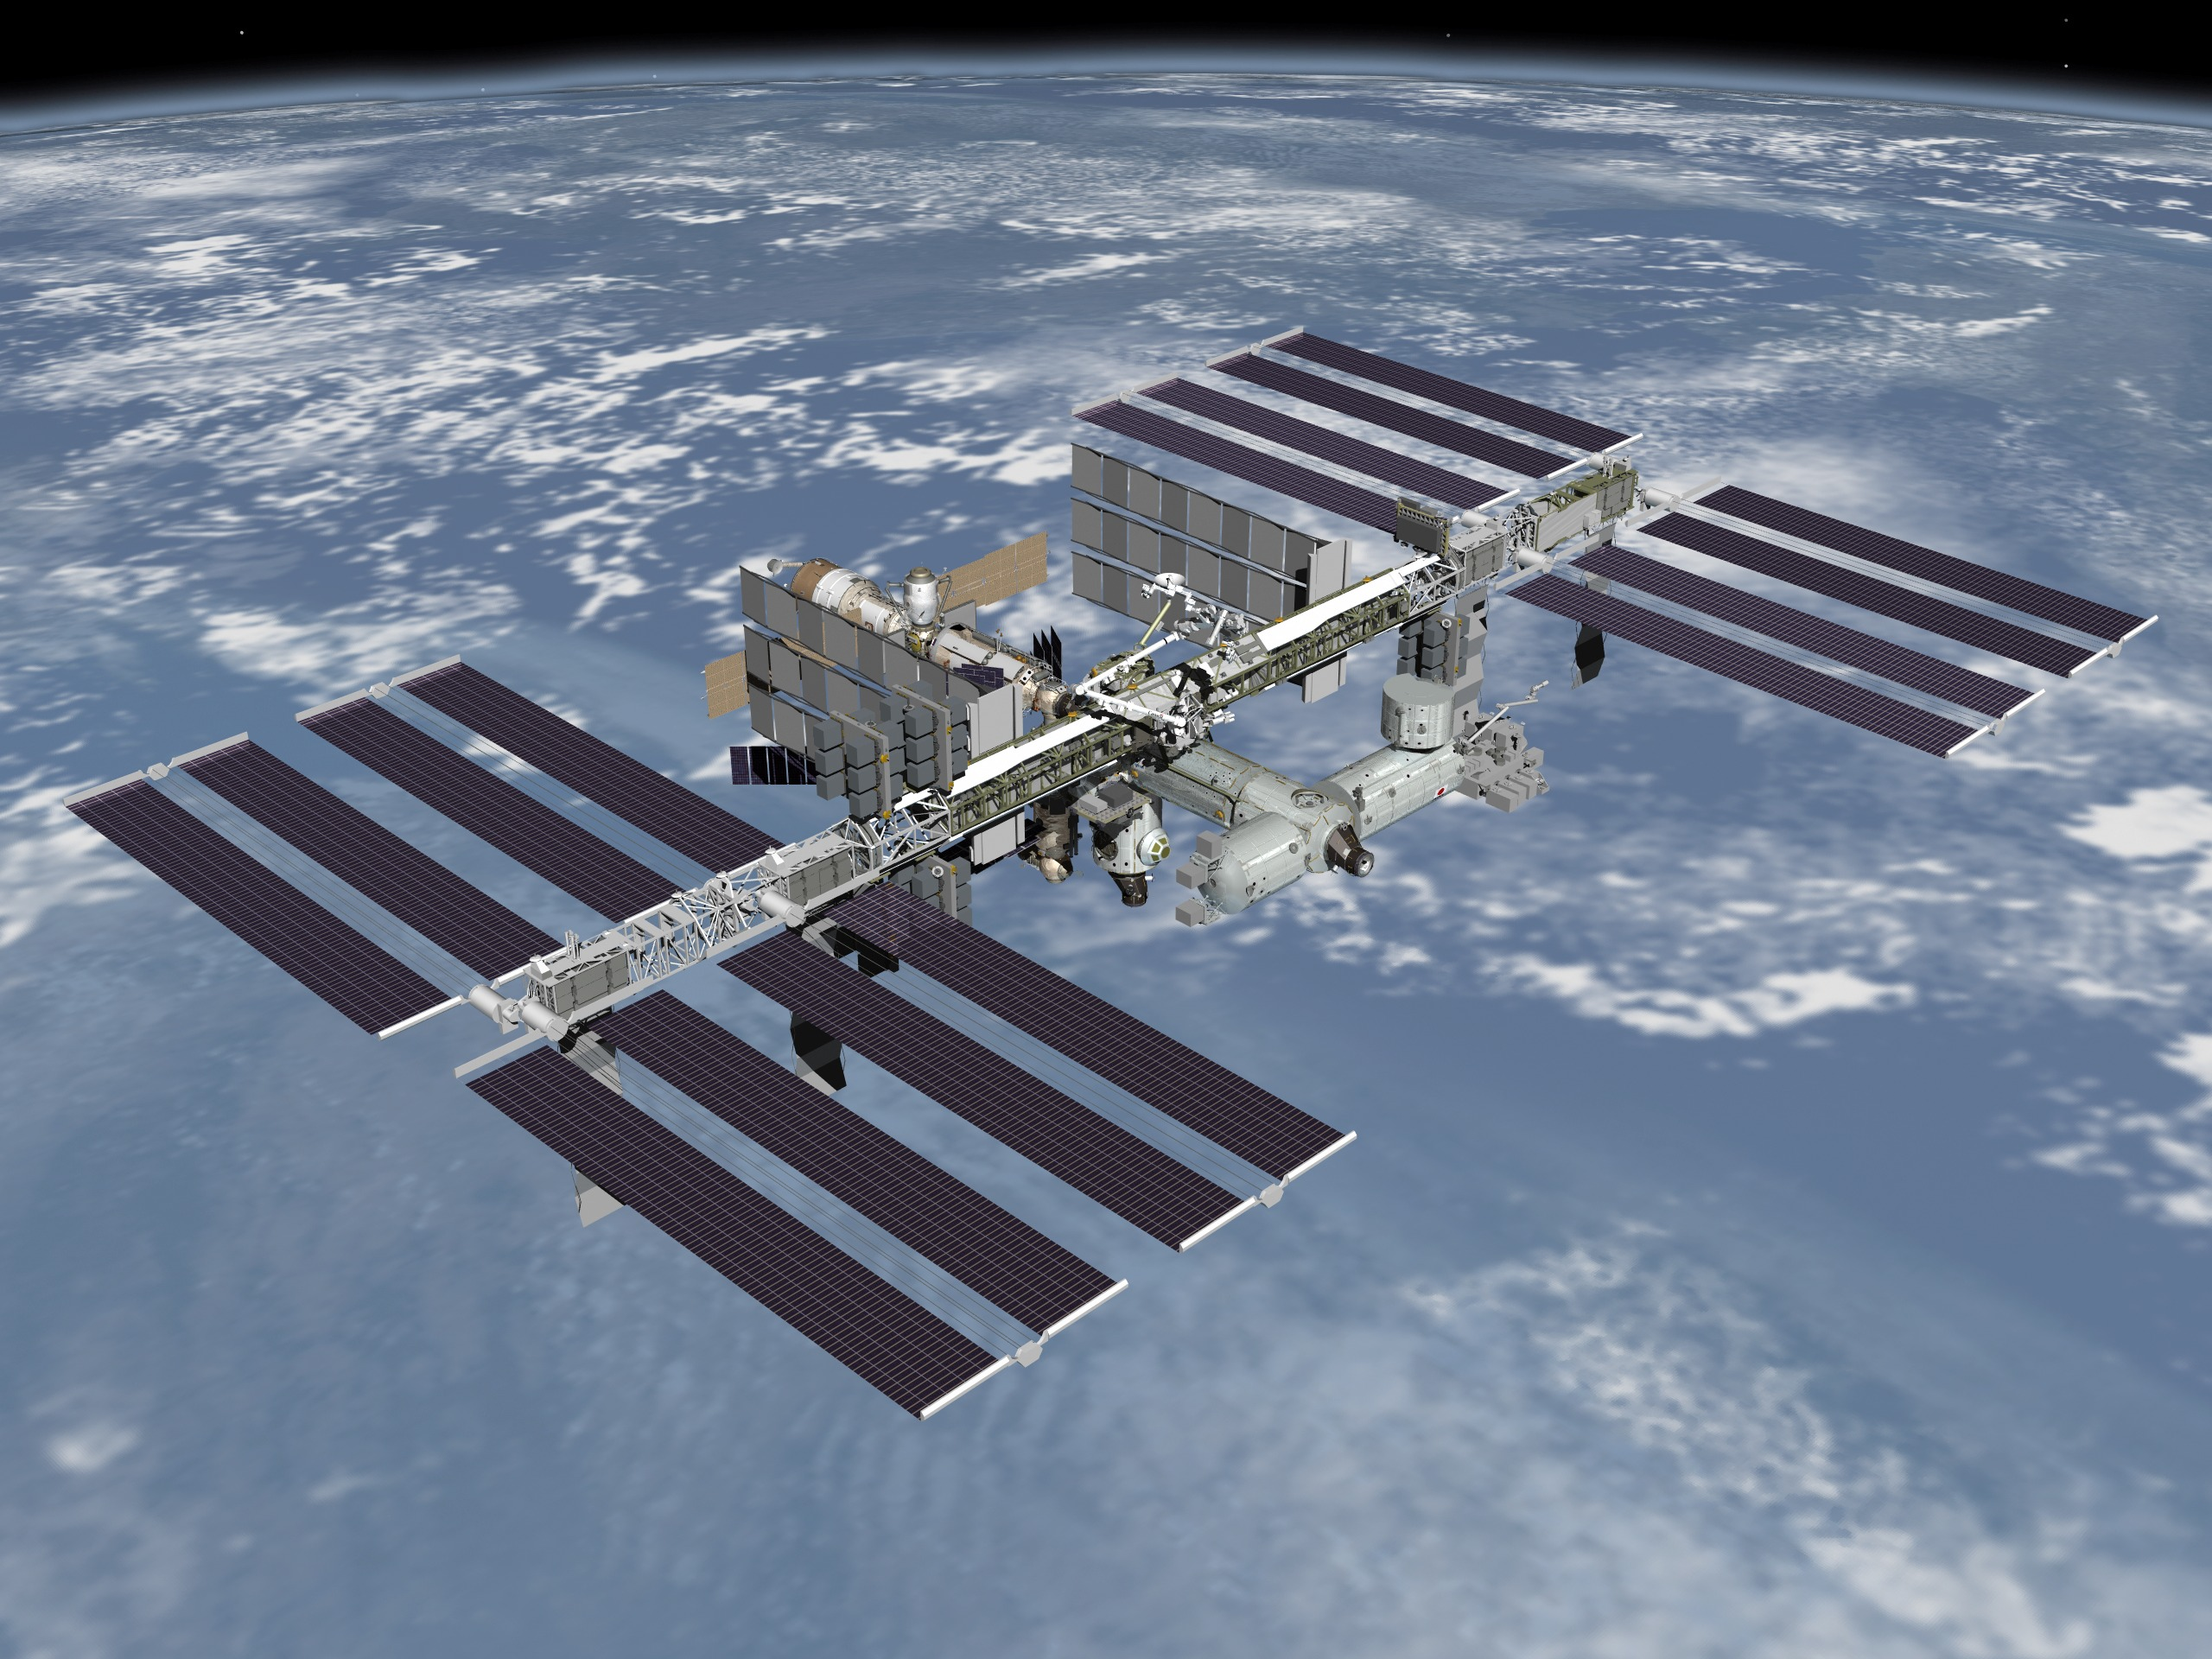 http://mediad.publicbroadcasting.net/p/wsdl/files/201410/internaitional_space_station,_nasa,gov_0.jpg